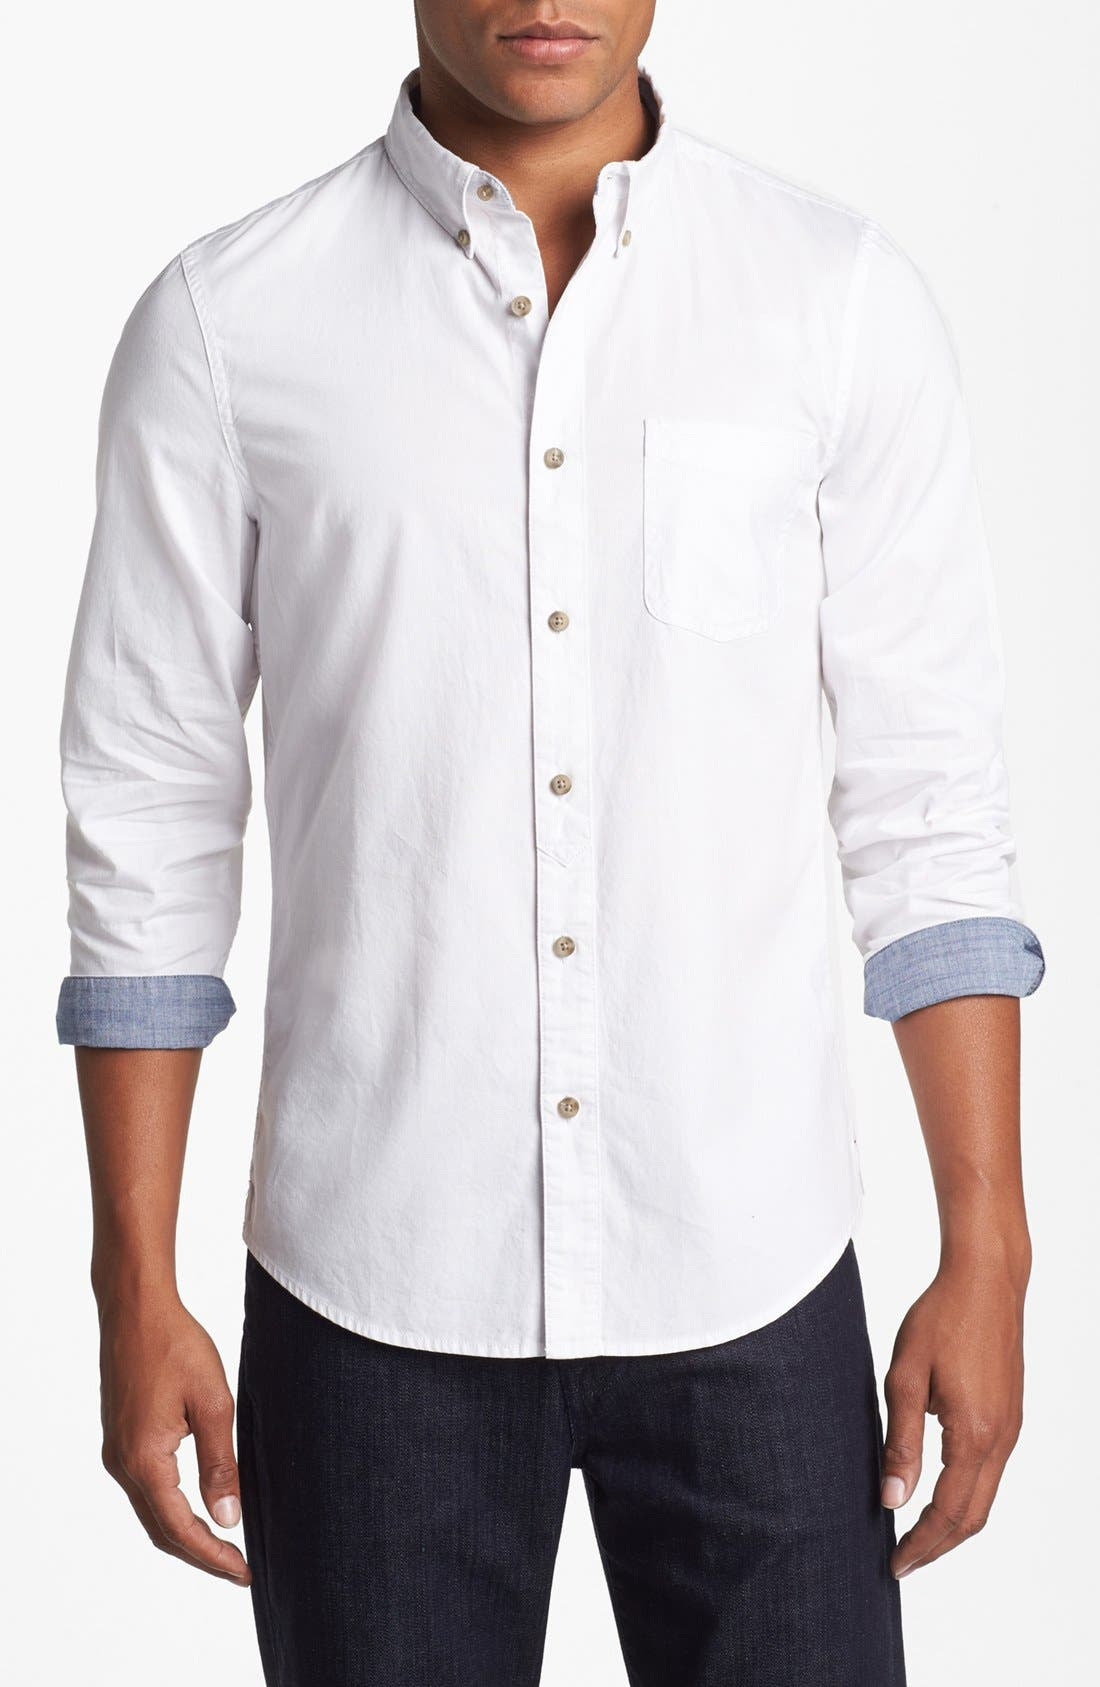 Alternate Image 1 Selected - 1901 Pinpoint Oxford Shirt